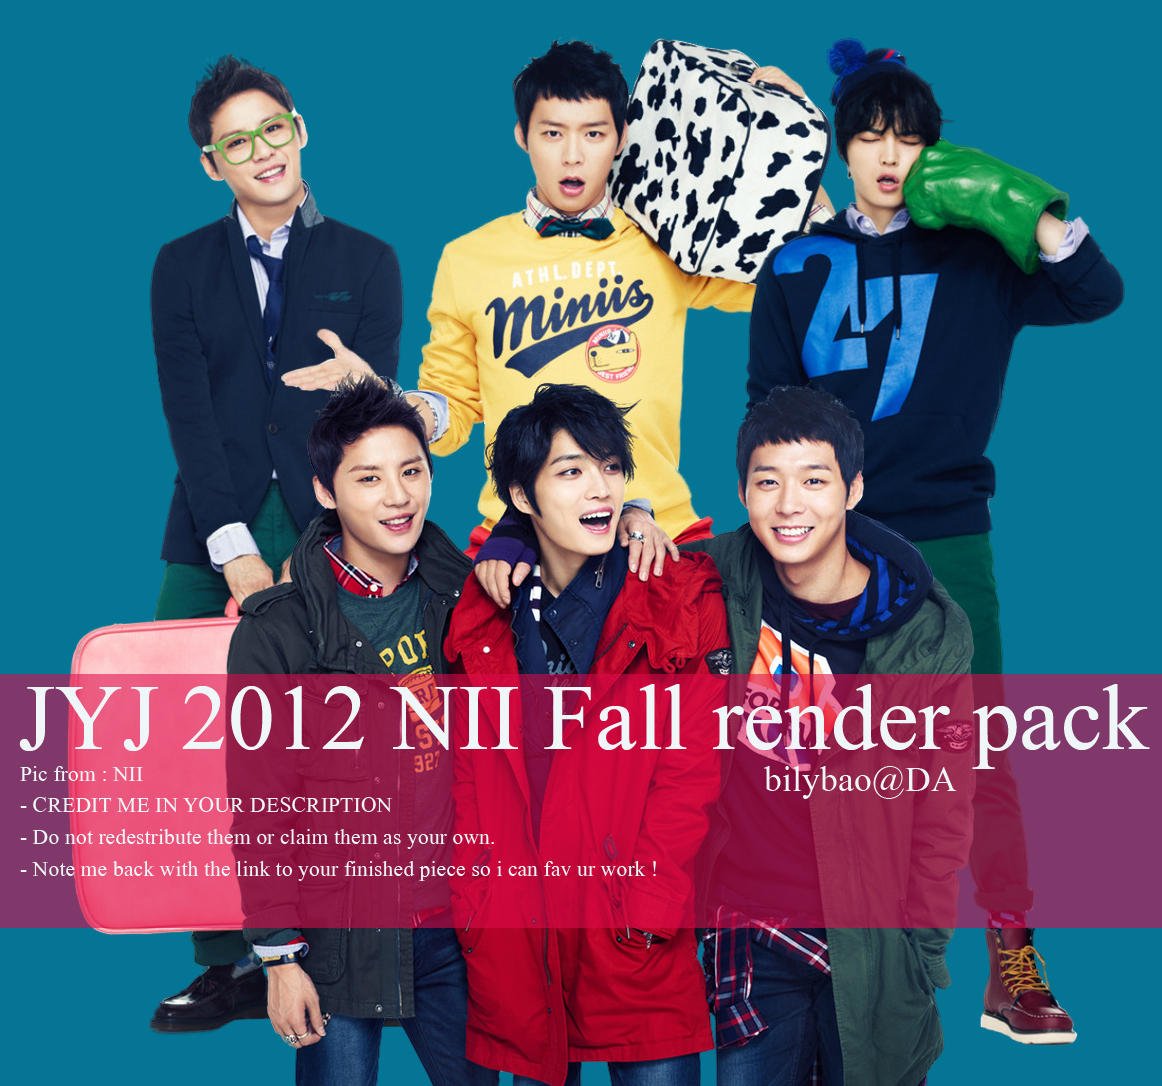 JYJ 2012 NII Fall render pack by BiLyBao